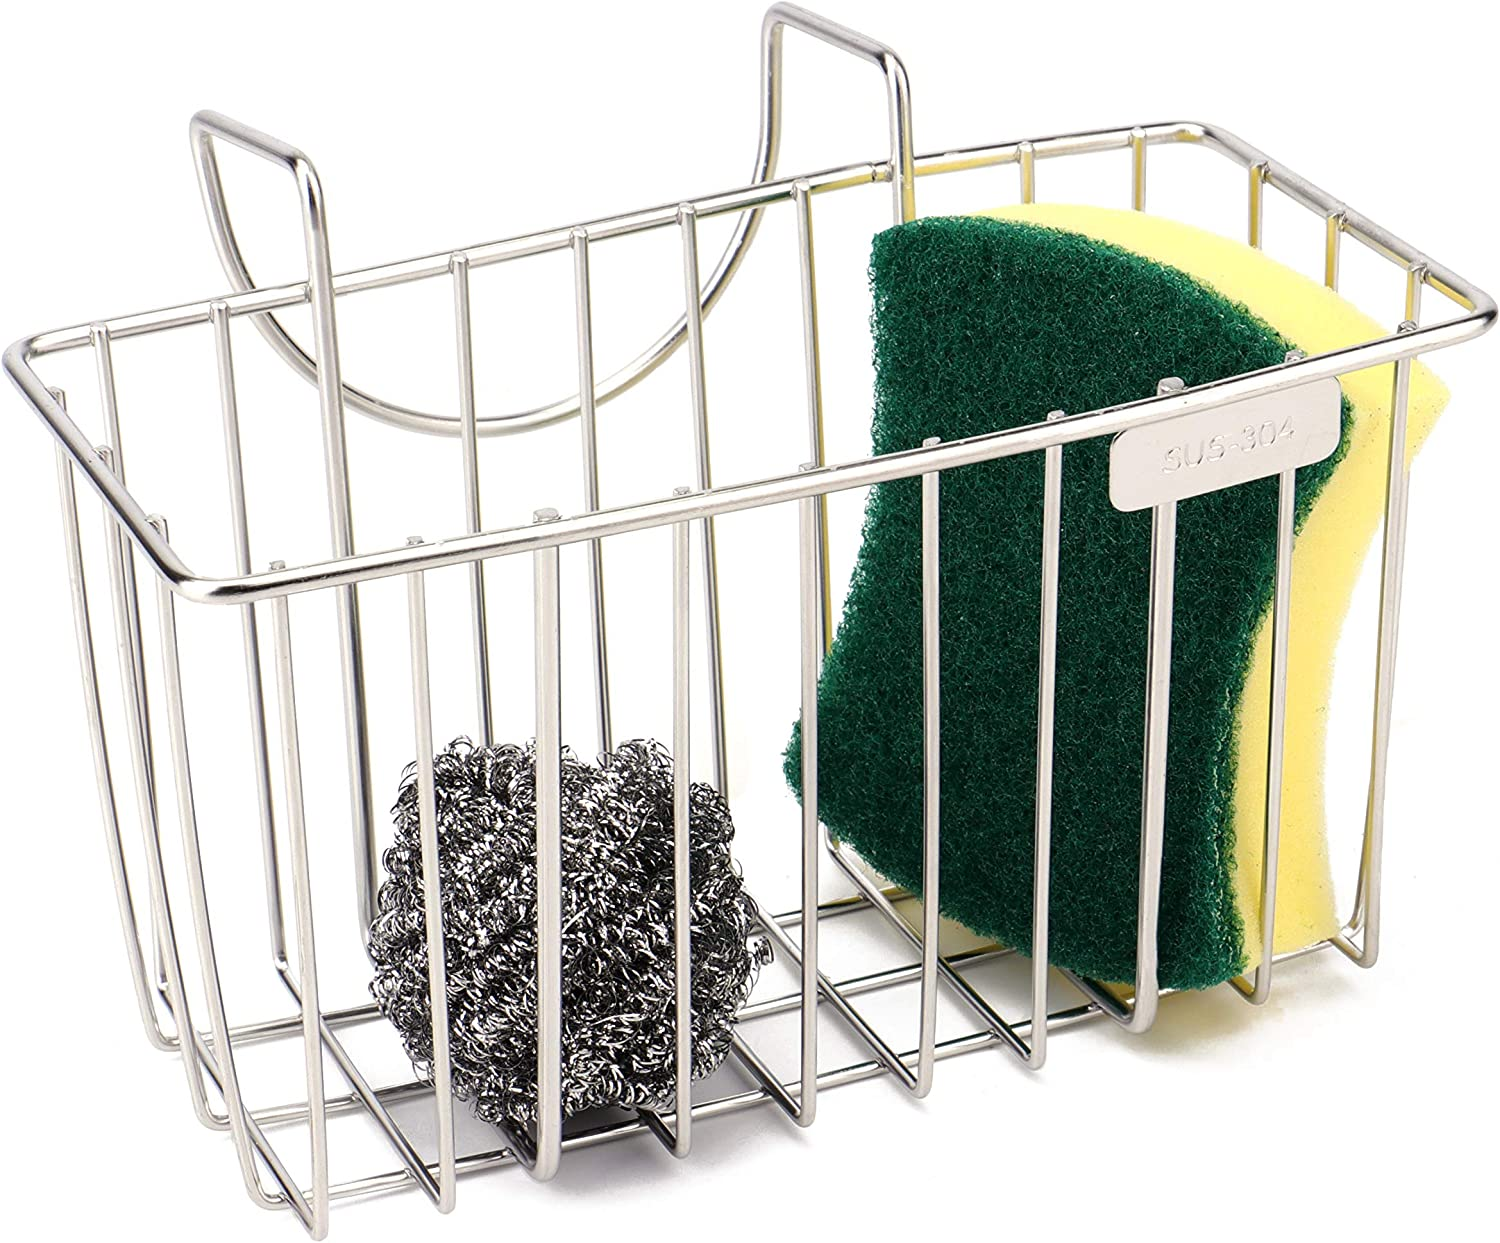 Kitchen Sponge Holder - Sink Organizer Caddy - Dishwashing Liquid Drainer Soap Scrub Brush Rack - Stainless Steel